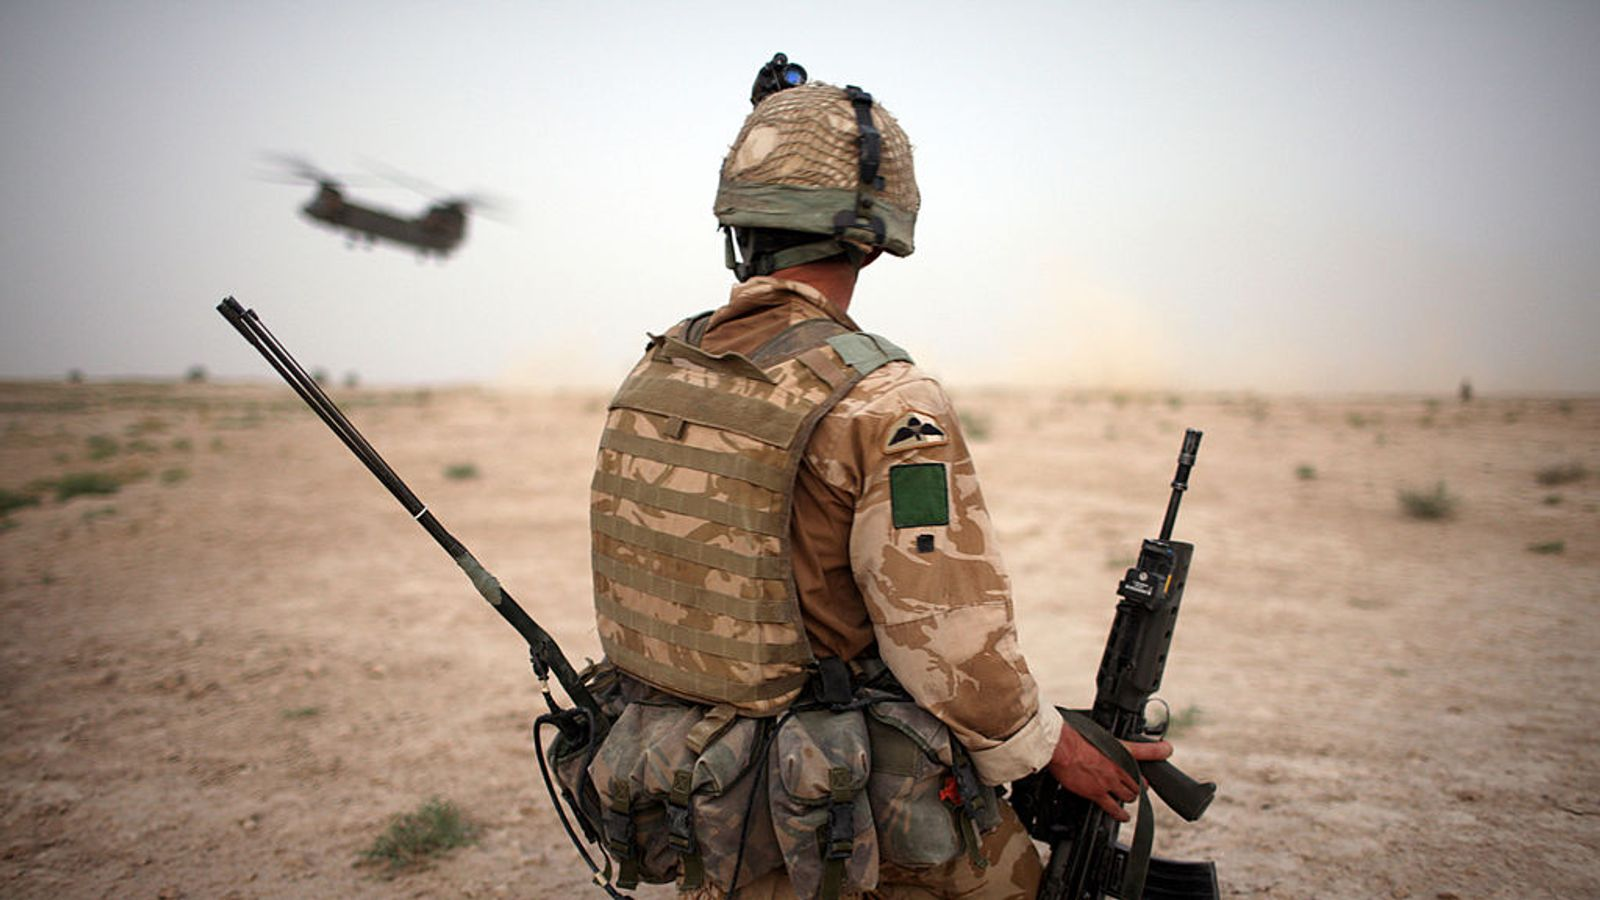 Russia paid Taliban fighters to attack British troops in Afghanistan